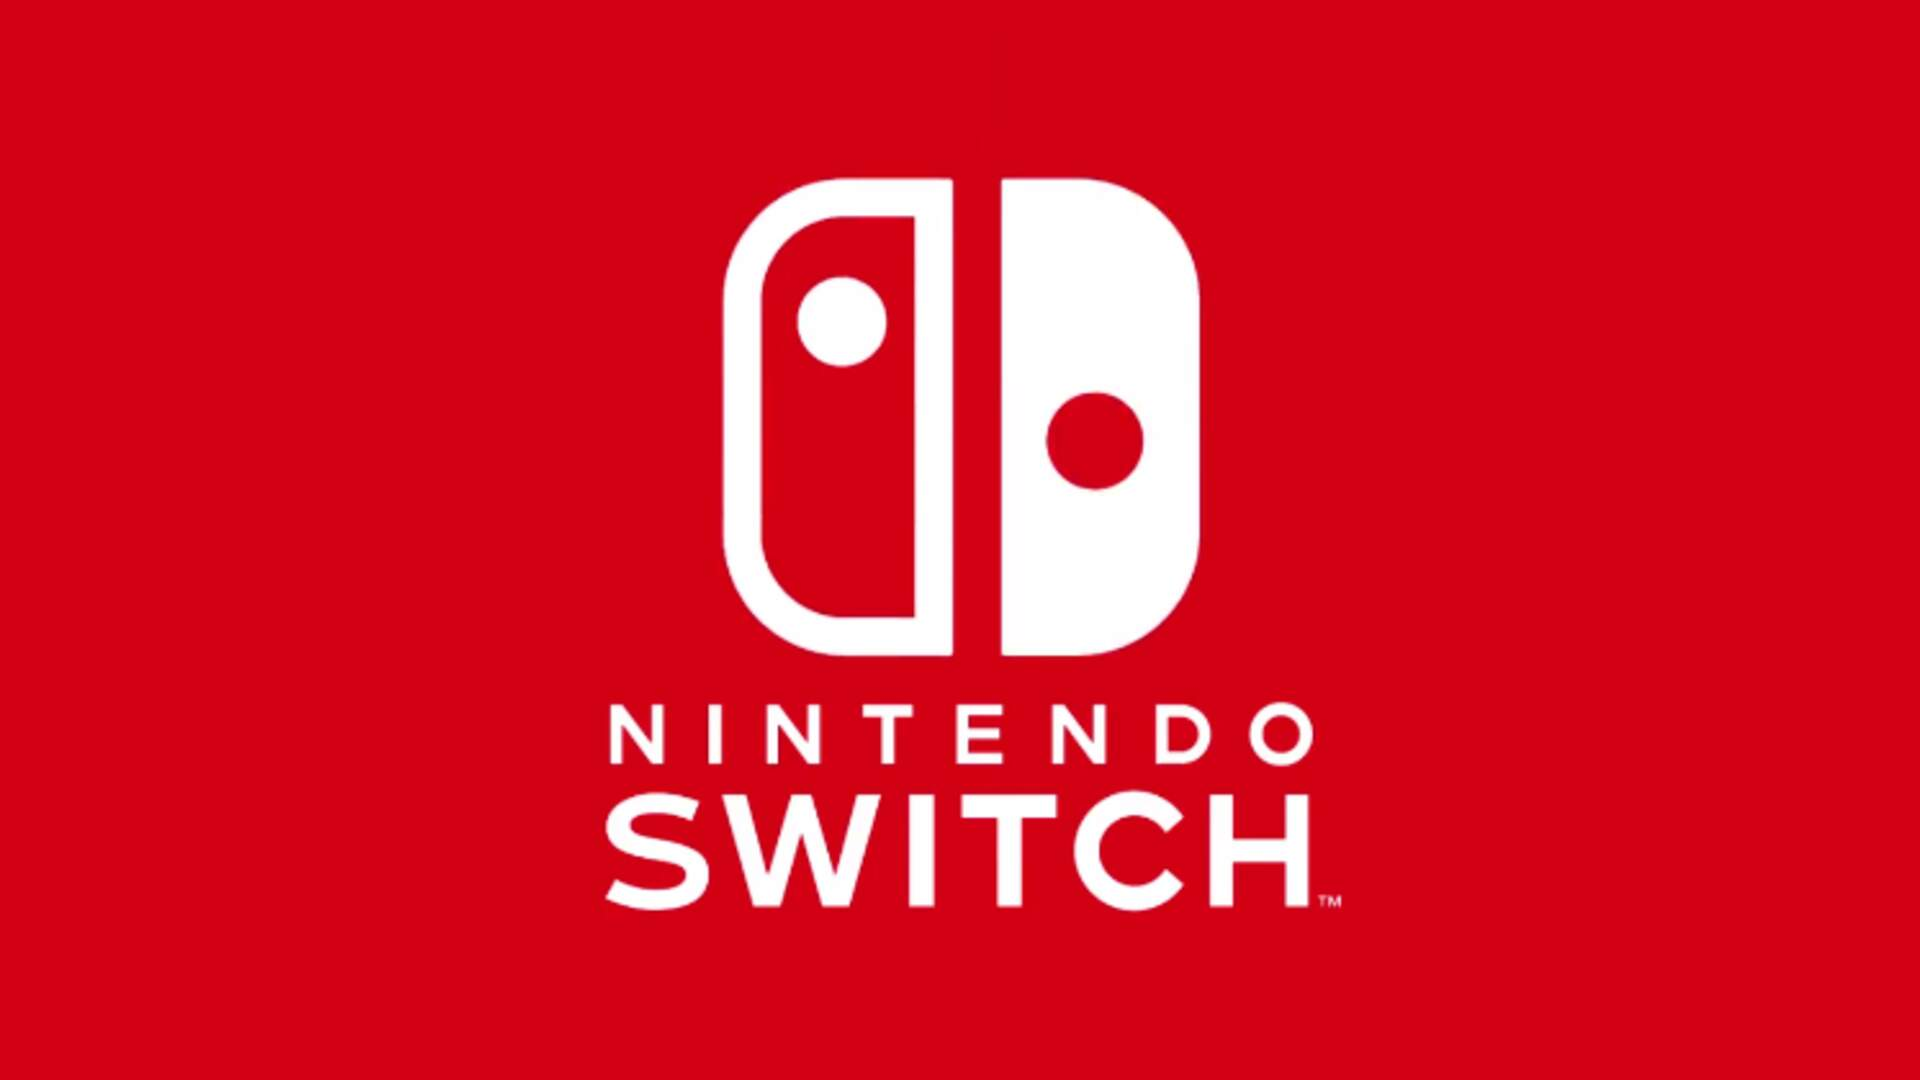 Nintendo Switch Online Service Pushed to 2018, Will Cost $20 Per Year